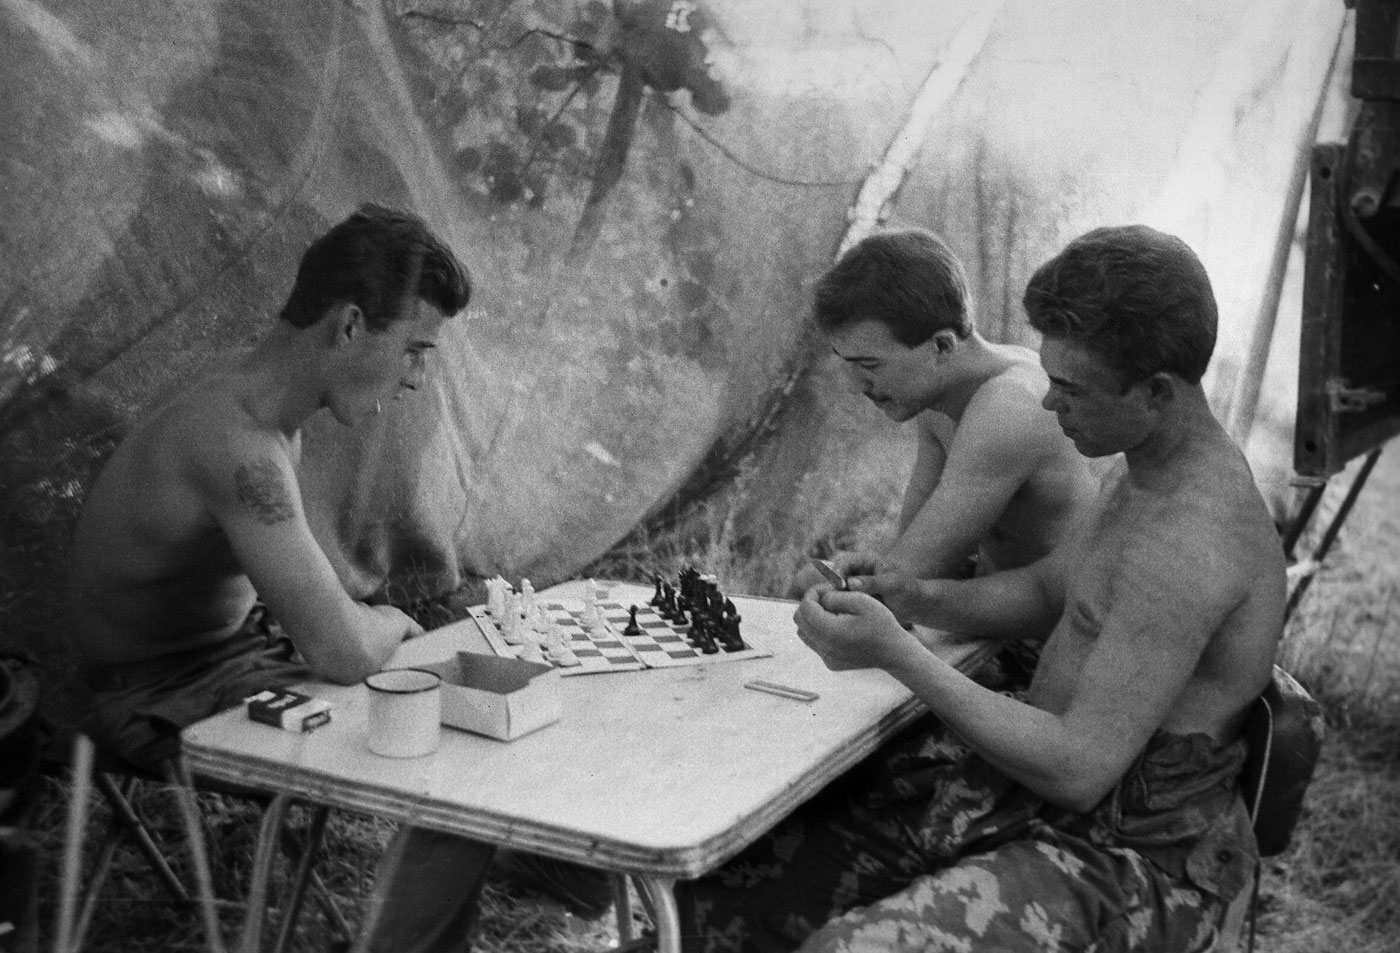 1985. Soviet Army soldiers deployed in Afghanistan during the Soviet-Afghan War play chess at their camp in Nangarhar Province.